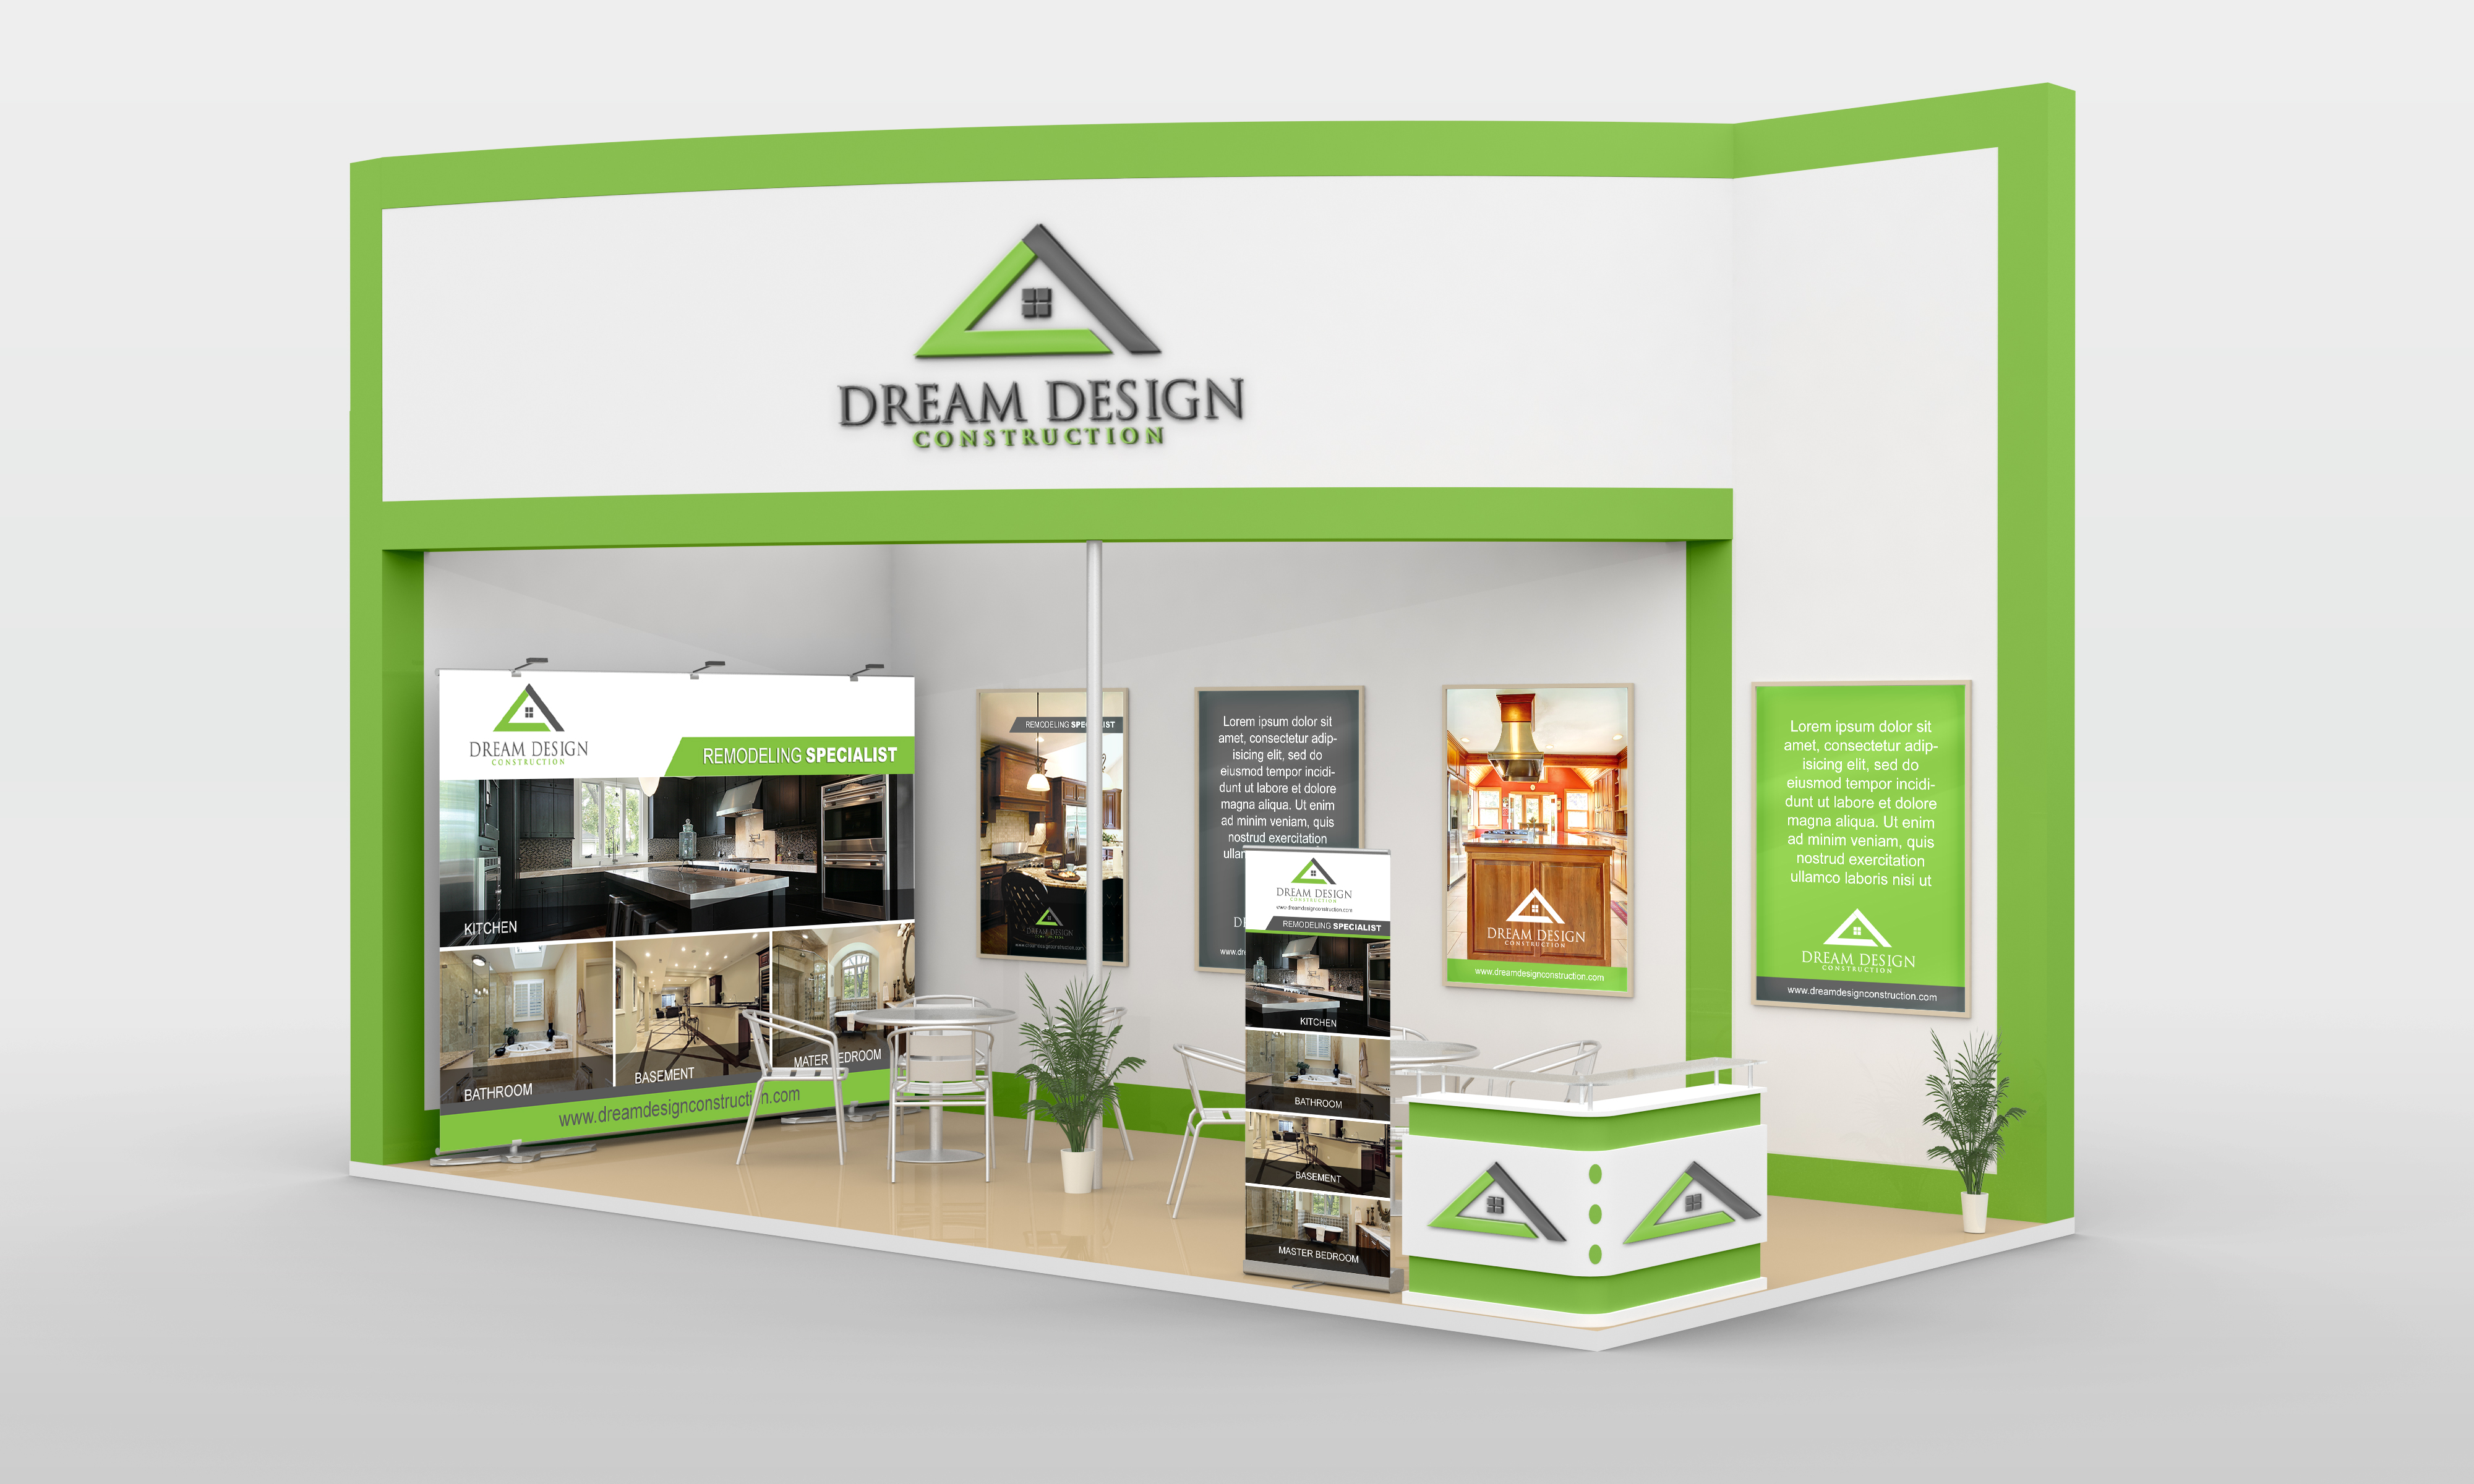 Remodeling Company Trade Show Display - Home and Garden